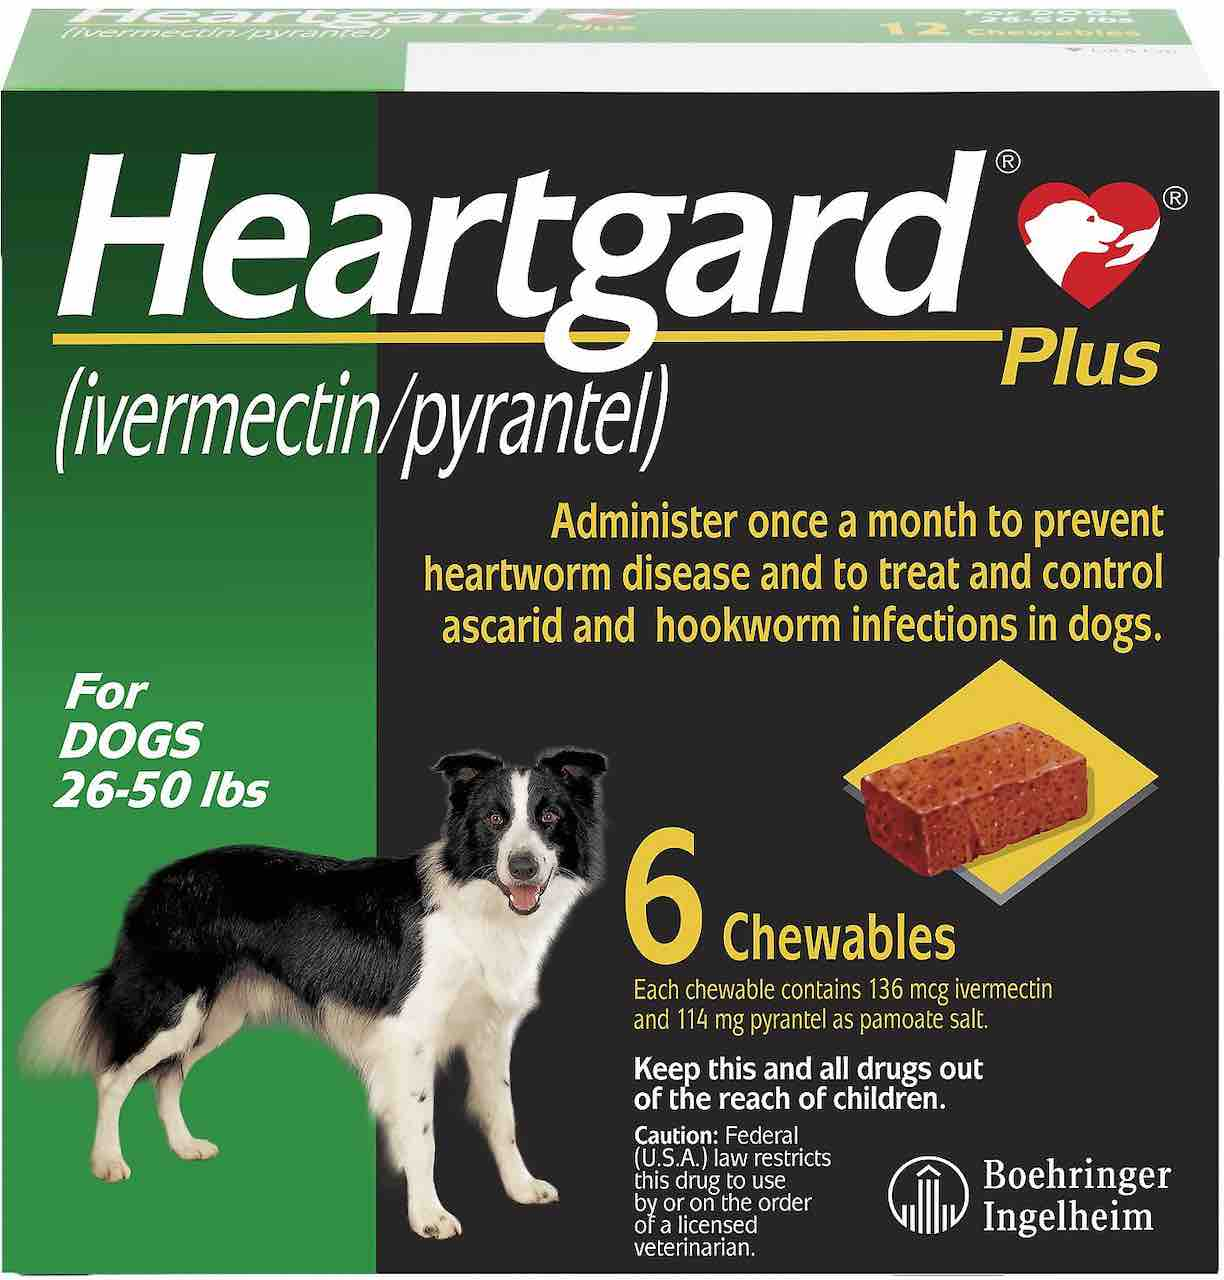 Heartgard Plus Chewables 6 doses for dogs 26-50 lbs (Green) 1